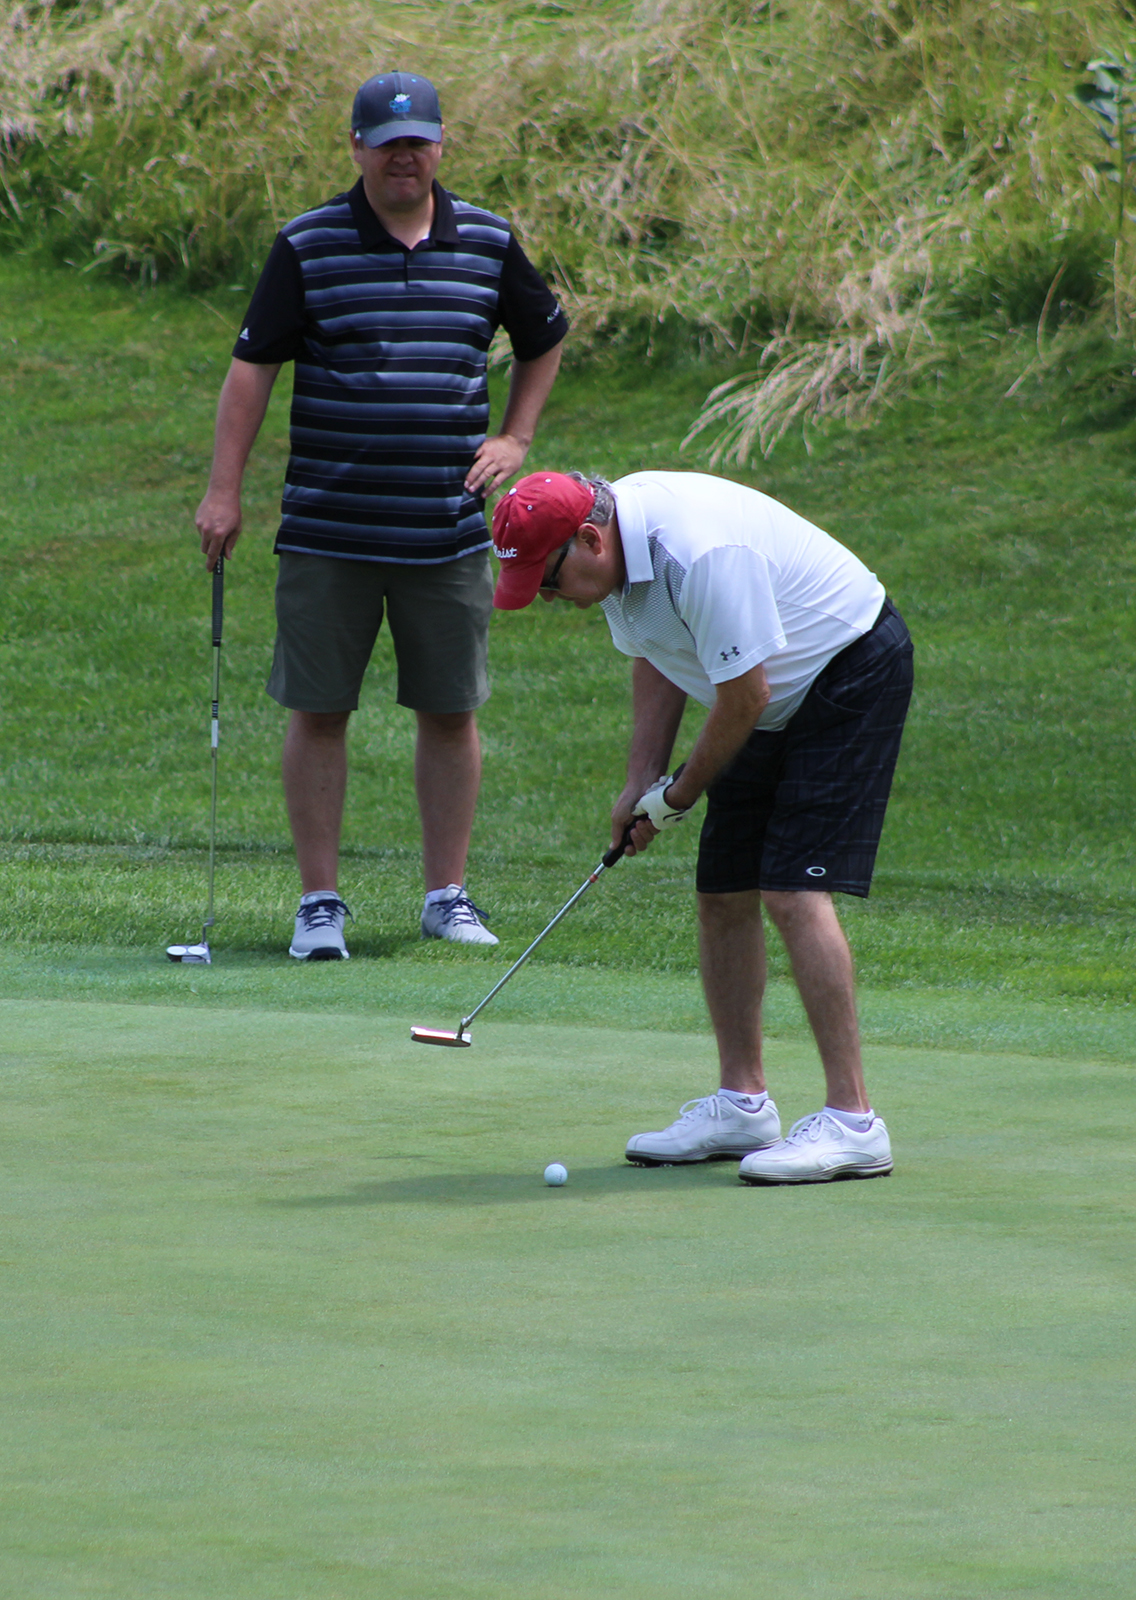 Champions Run Golf Course hosted the OBA Field Day last Monday, with players starting at noon with a shotgun start and a scramble format. Prizes were offered at each hole, with mulligans and long-drive assistance for sale. (Photo by Scott Stewart)